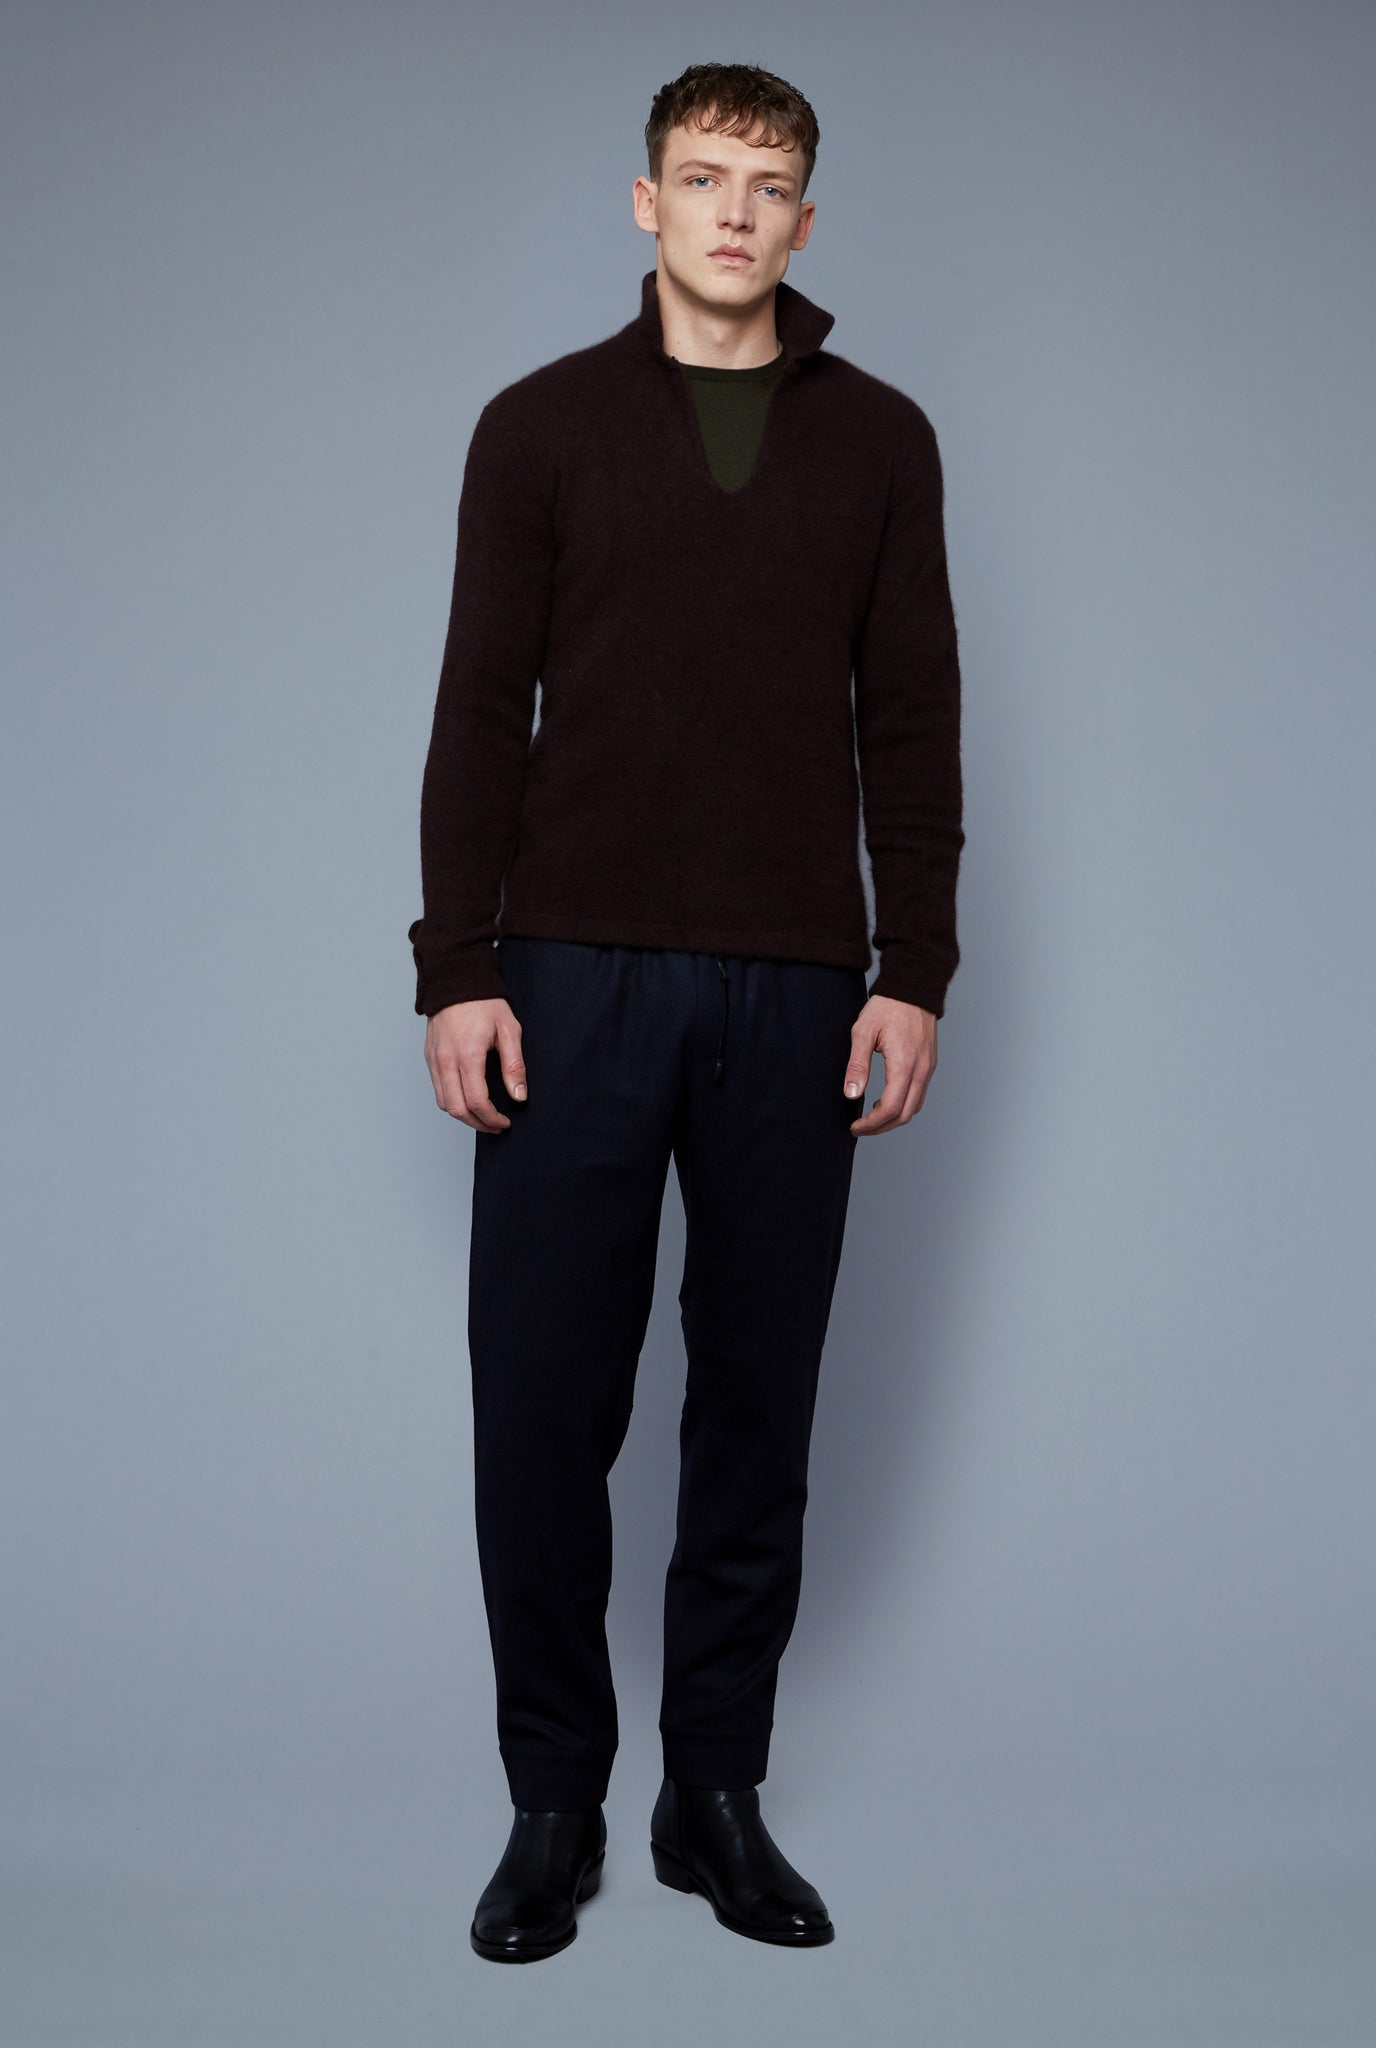 Front View: Model Milos Drago wearing Cashmere Boucle Sweater